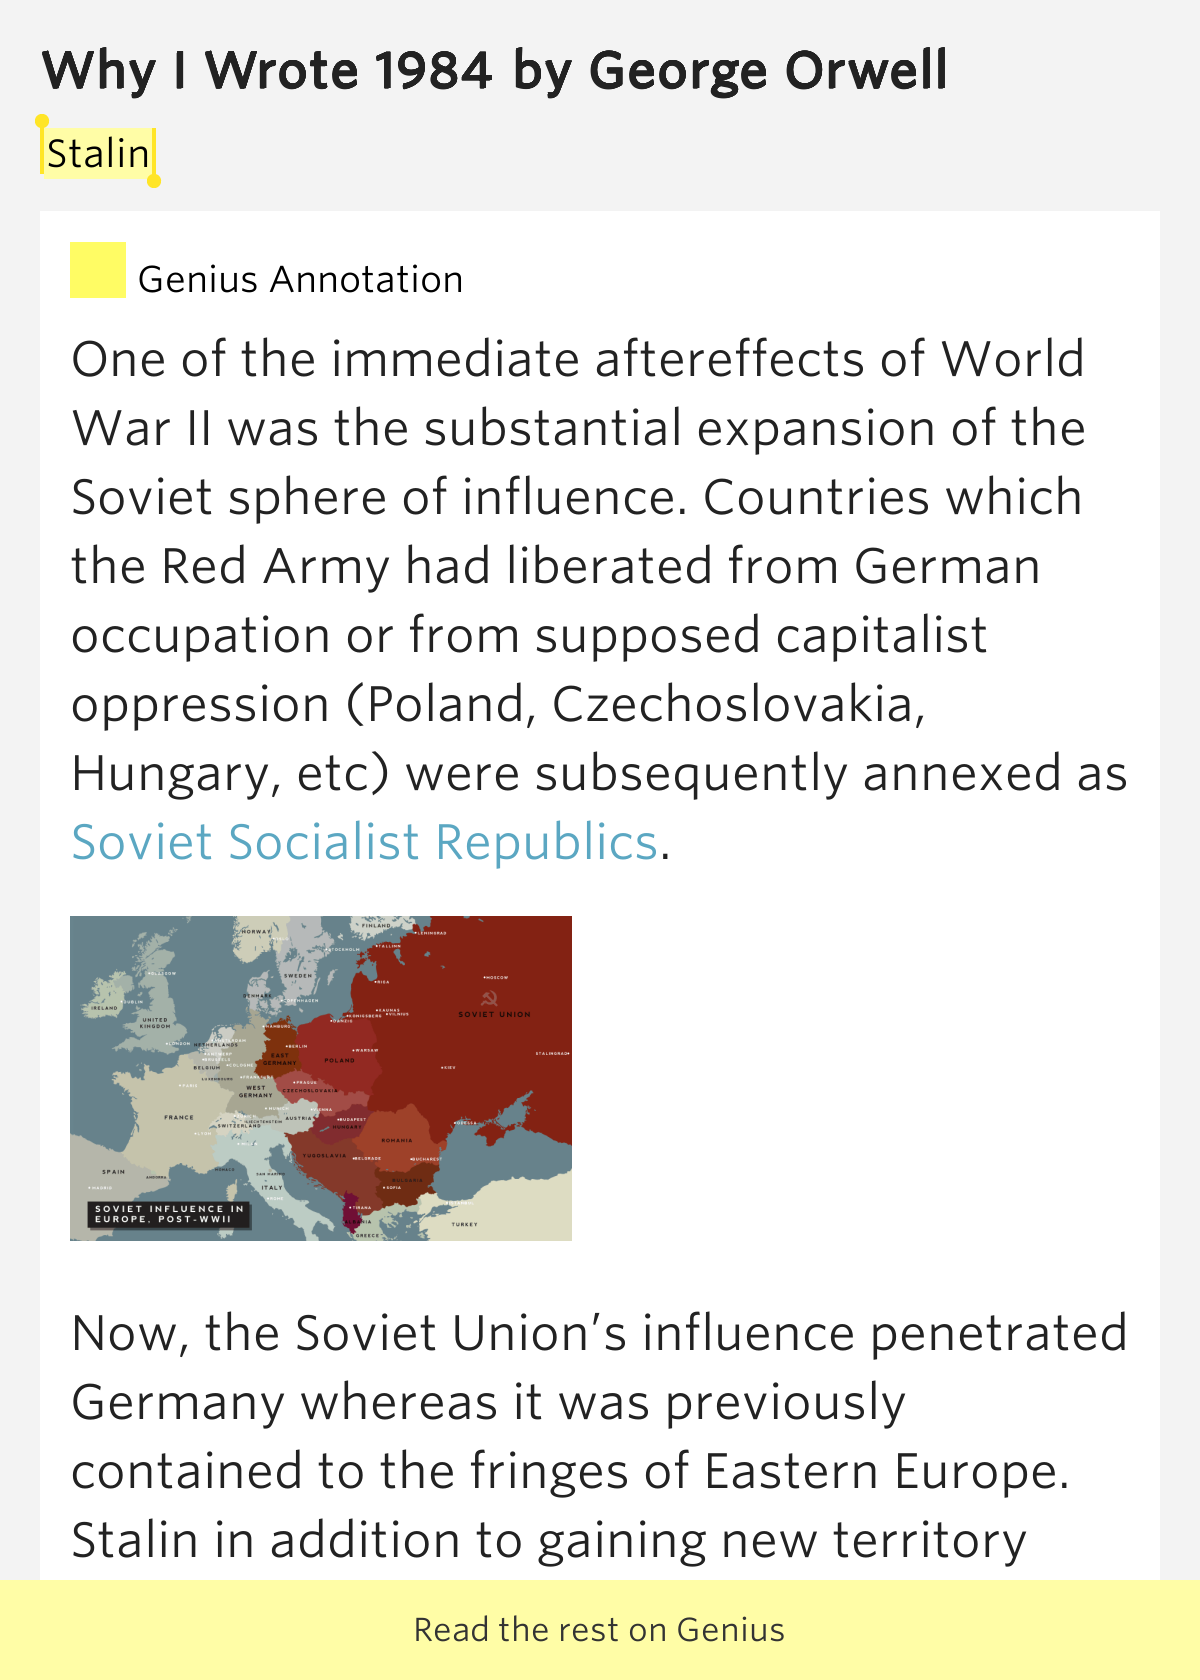 stalin why i wrote 1984 by george orwell